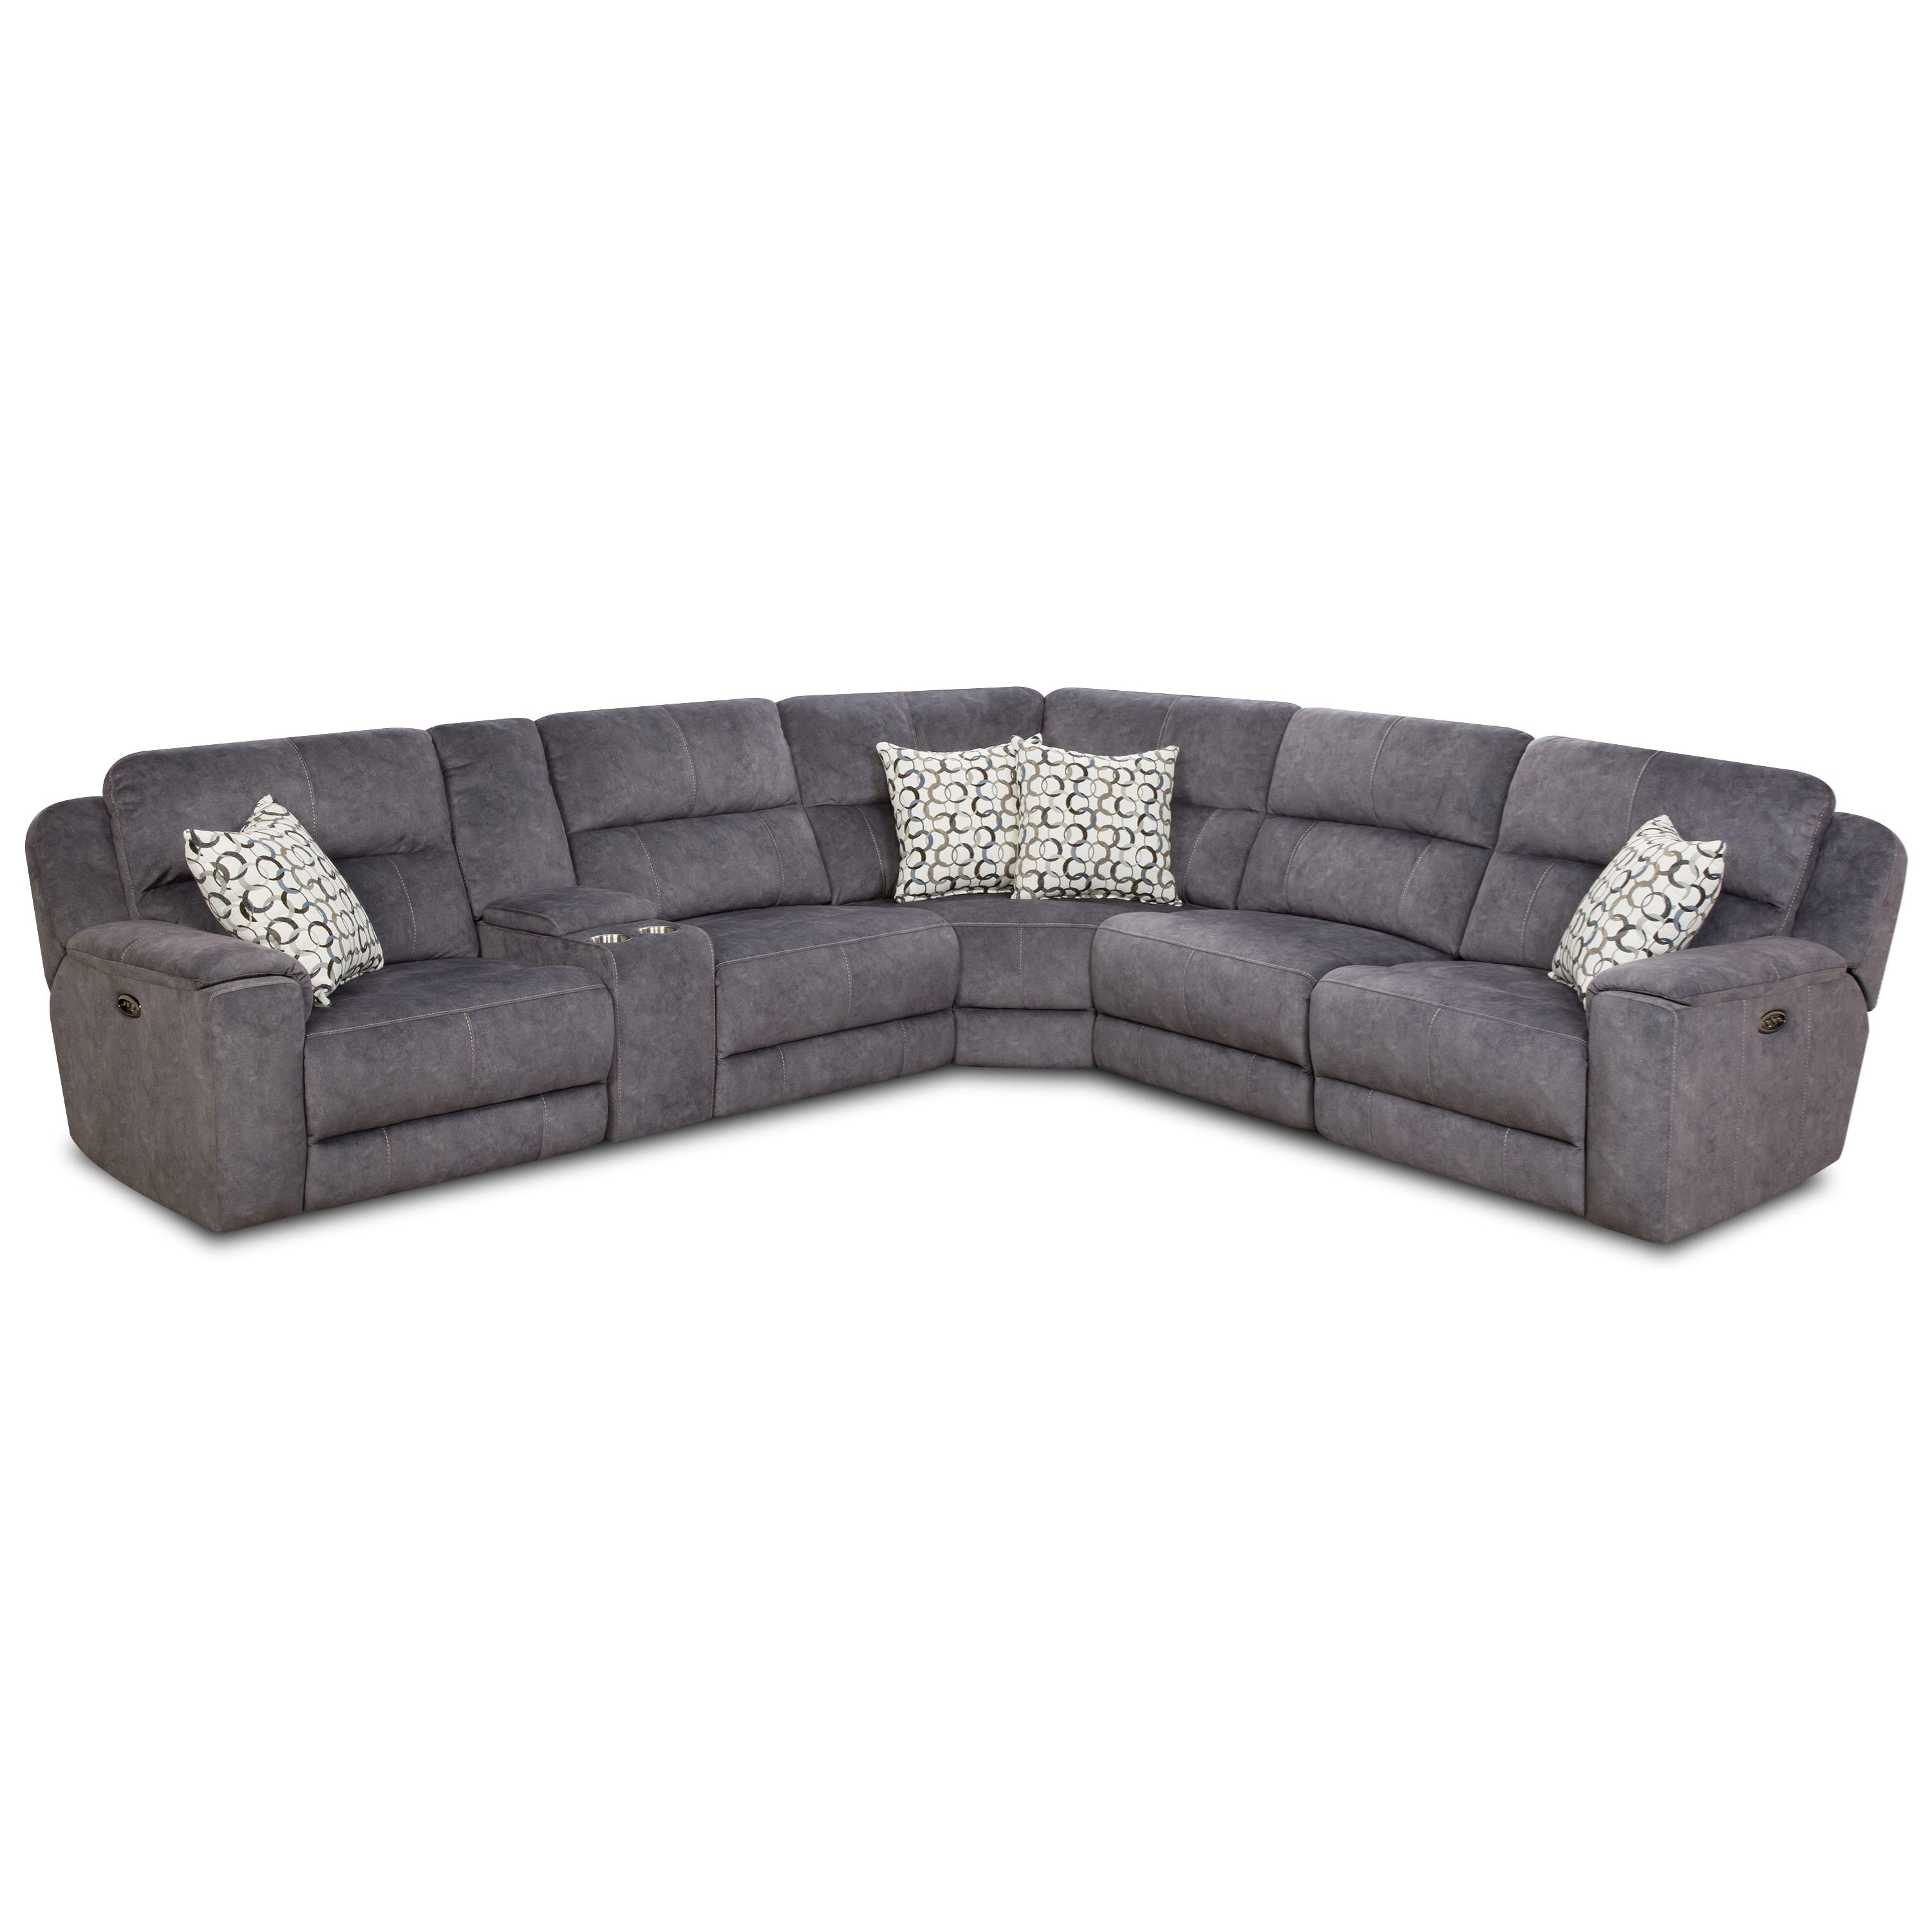 Reclining Sectional Sofa (2 Recliners)